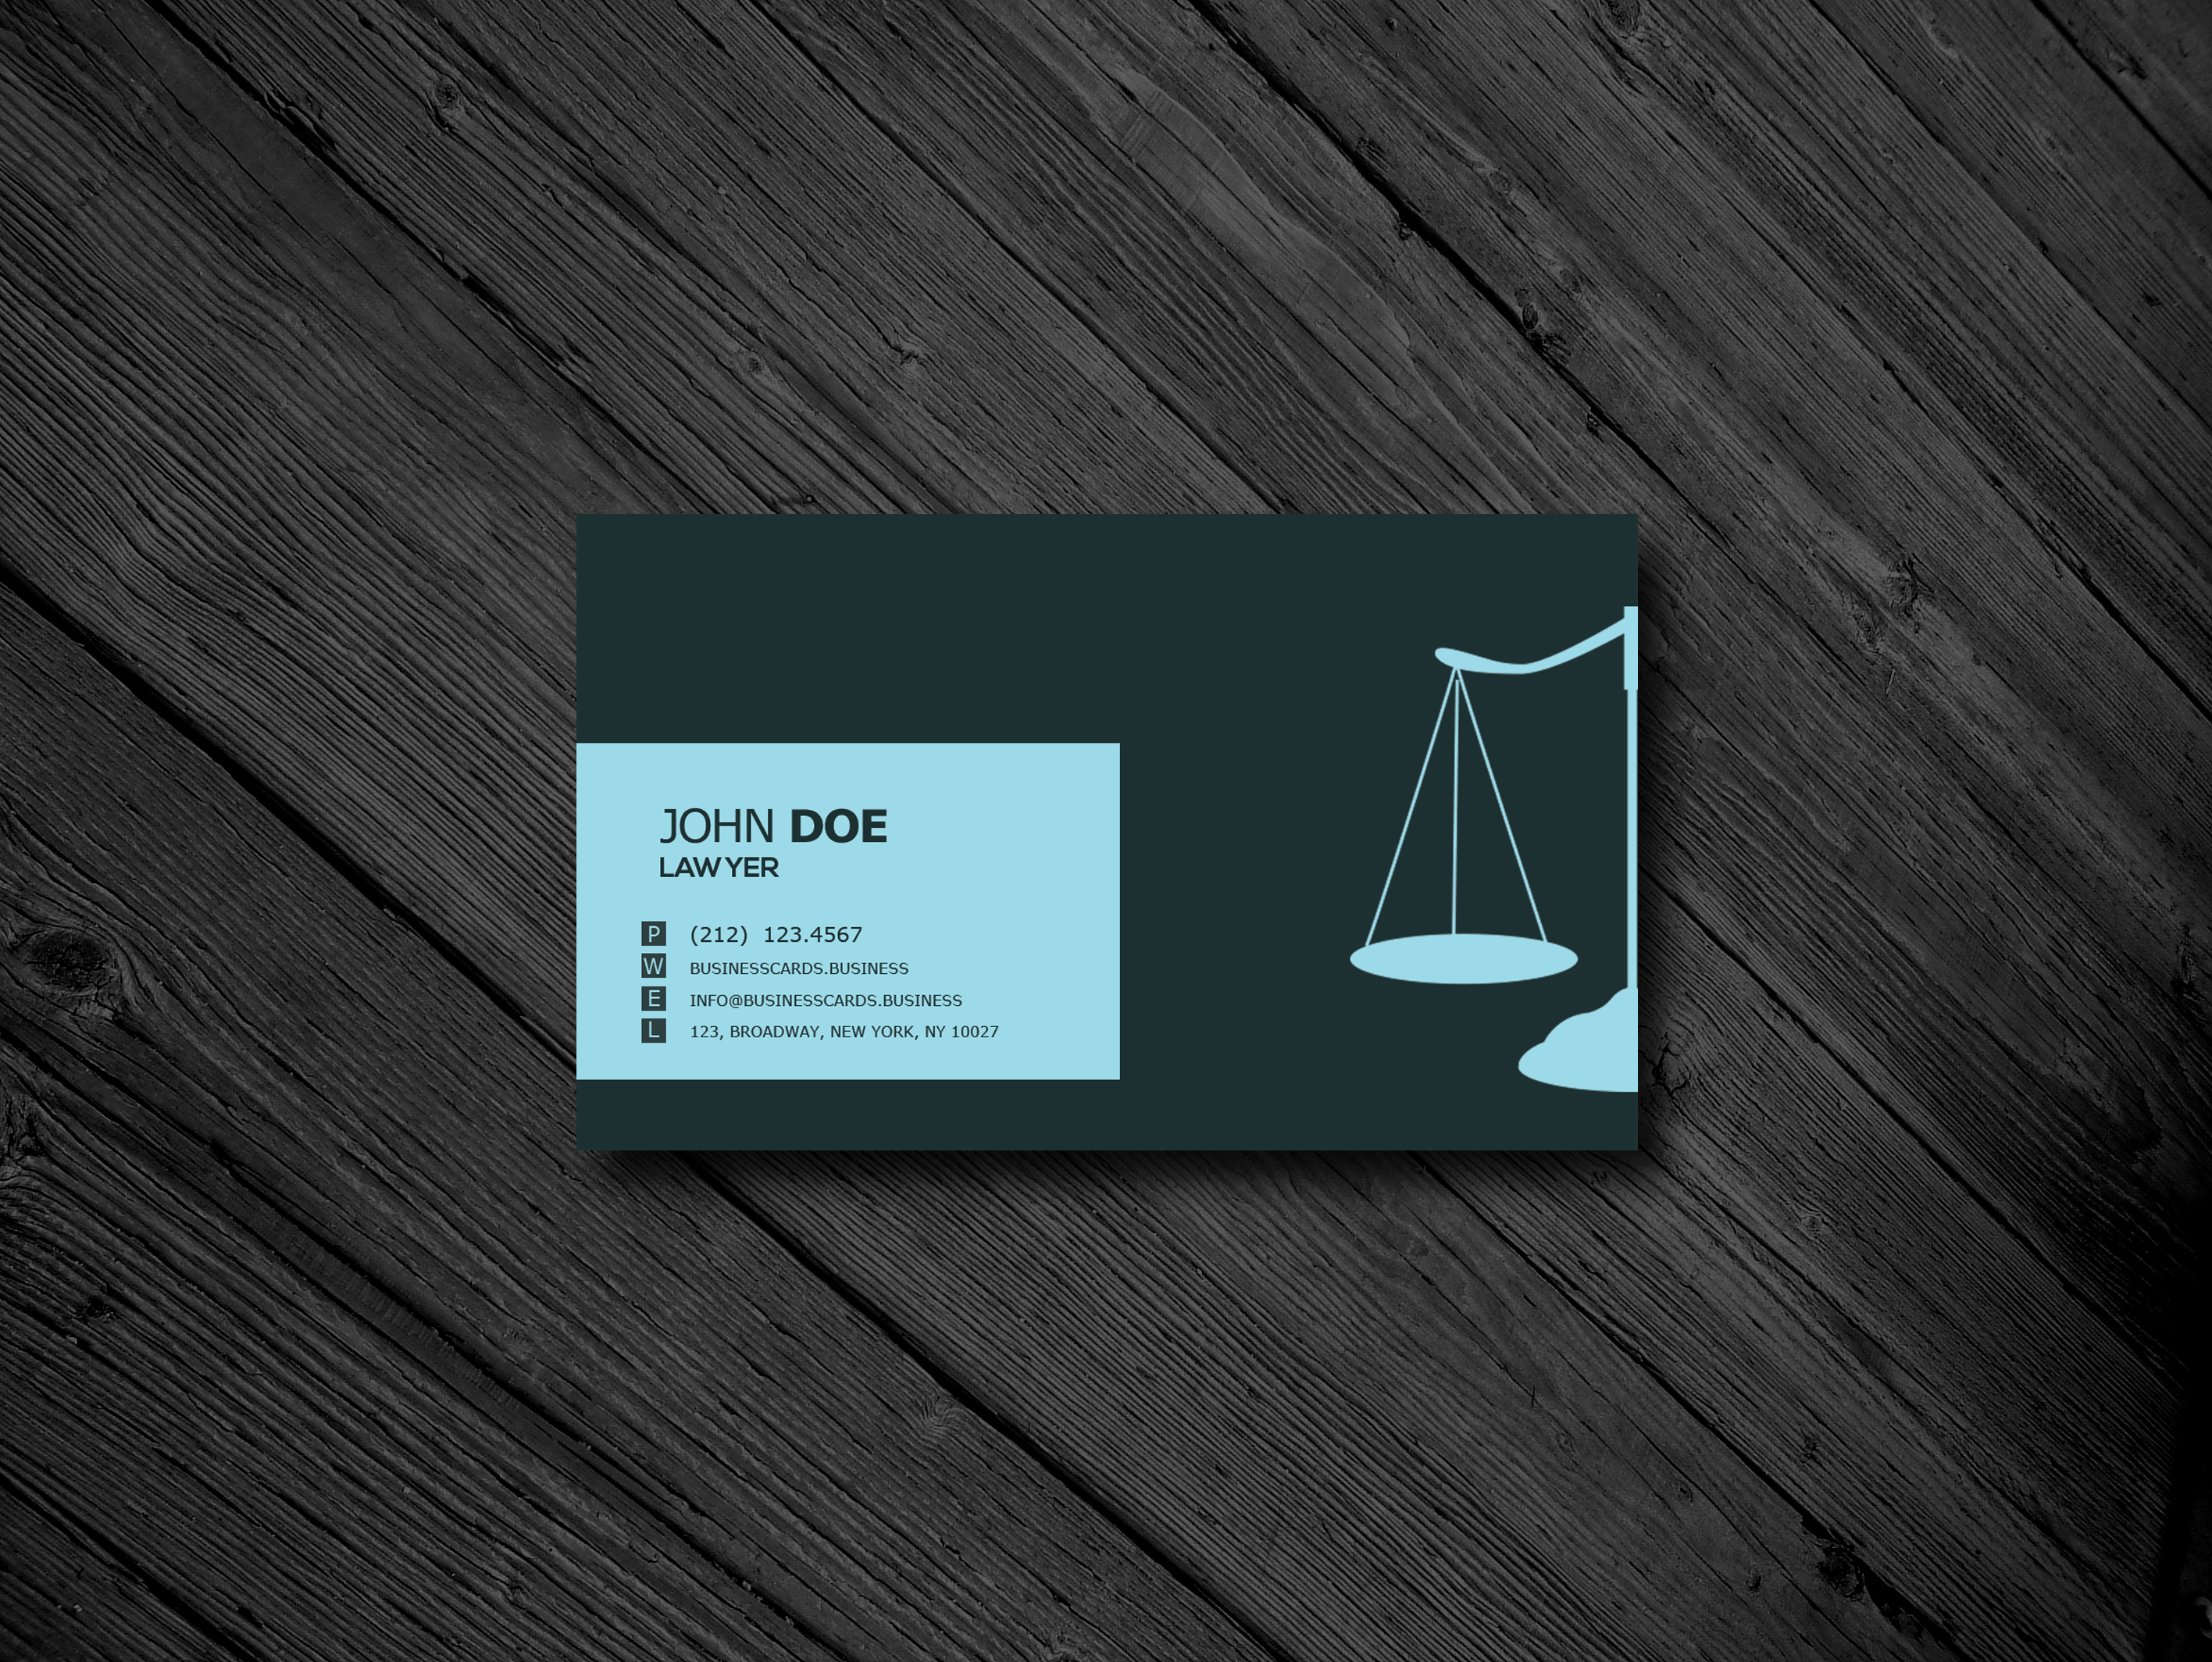 Free business card templates business cards templates free lawyer business card psd template cheaphphosting Choice Image